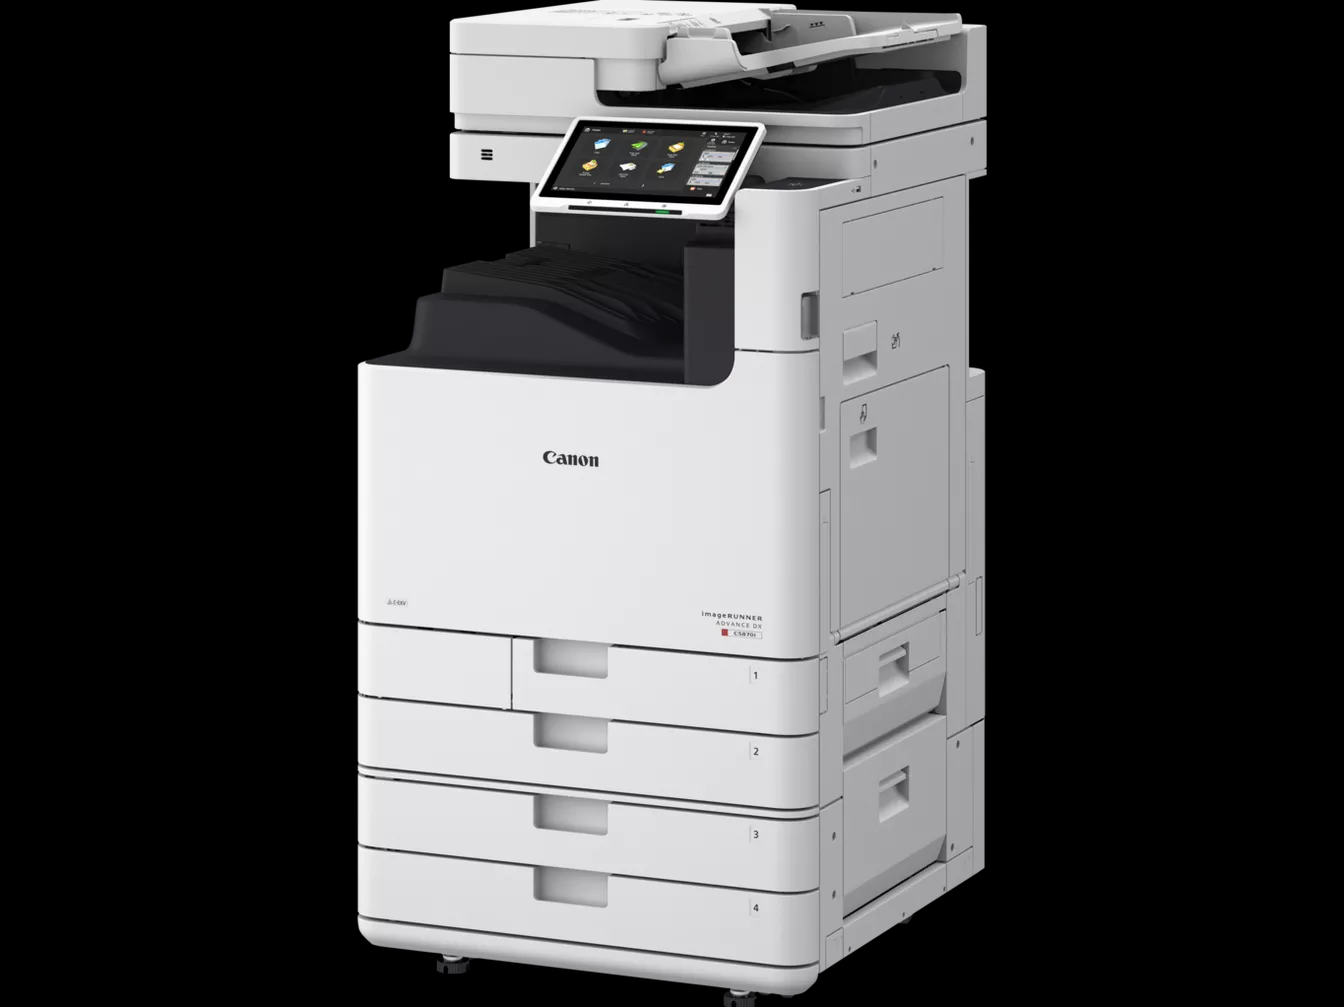 Canon ImageRUNNER advance DX C5850i A3 Colour MFD photocopier Printer